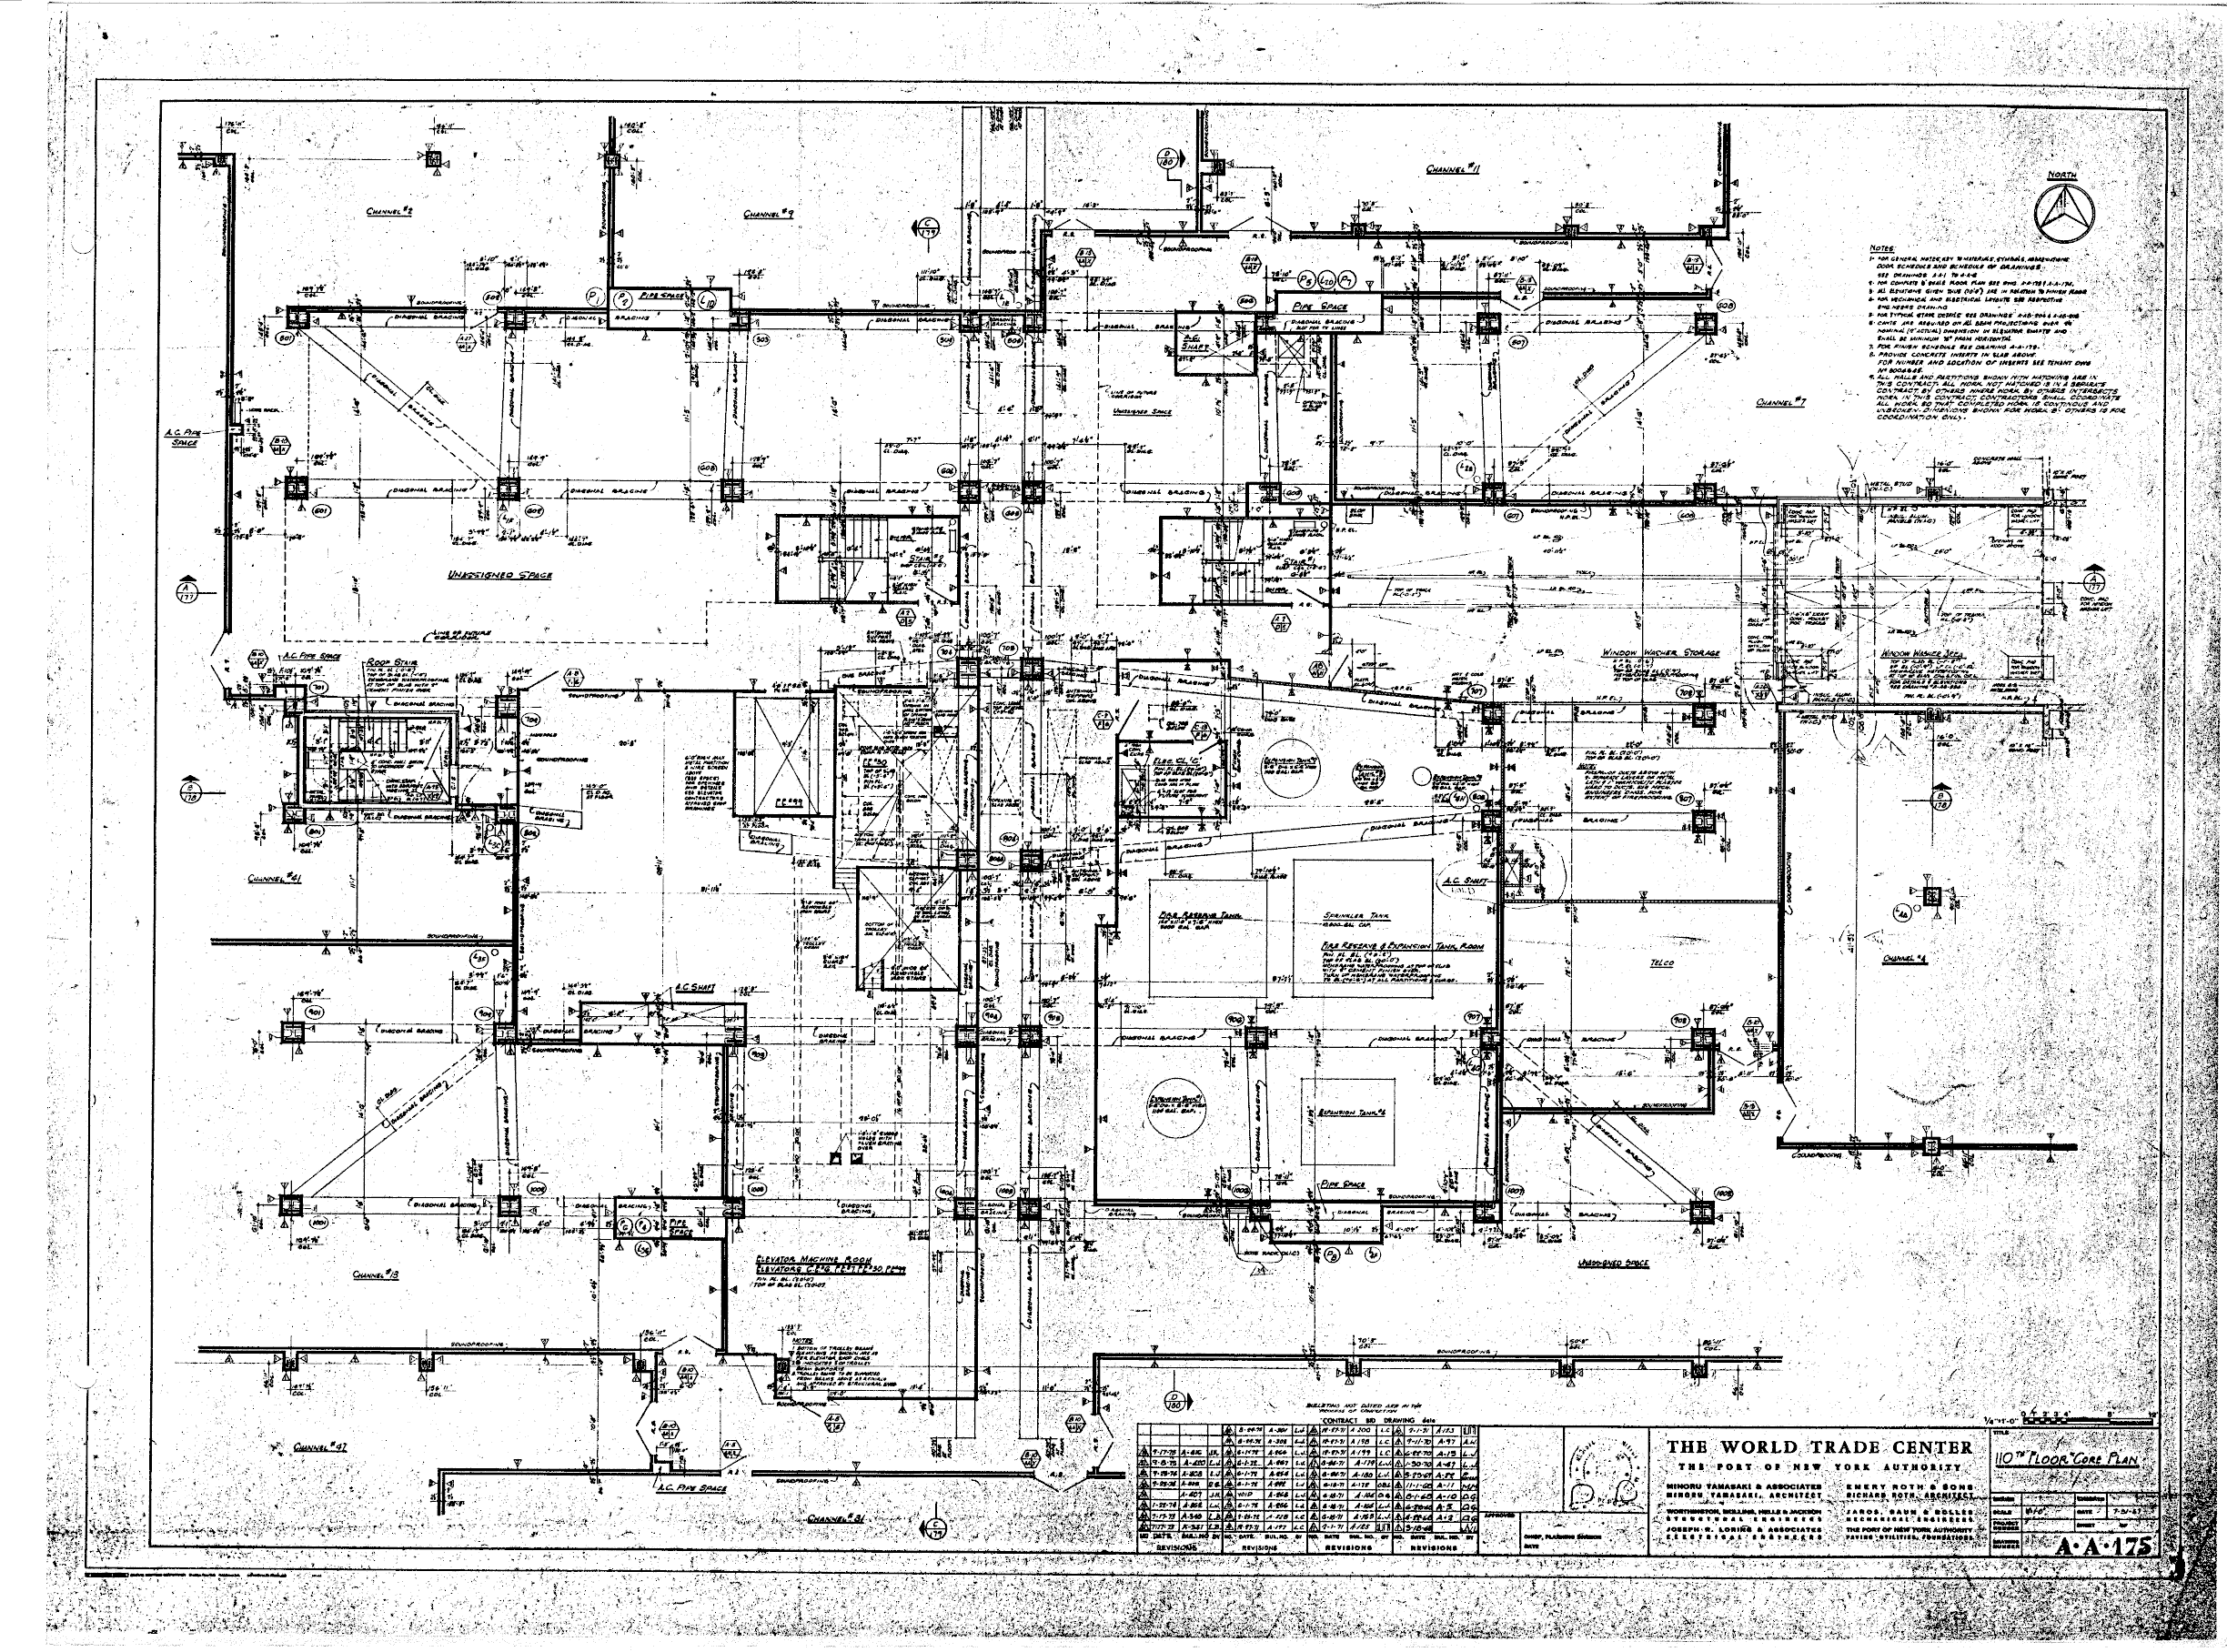 North tower blueprints for Print architectural drawings